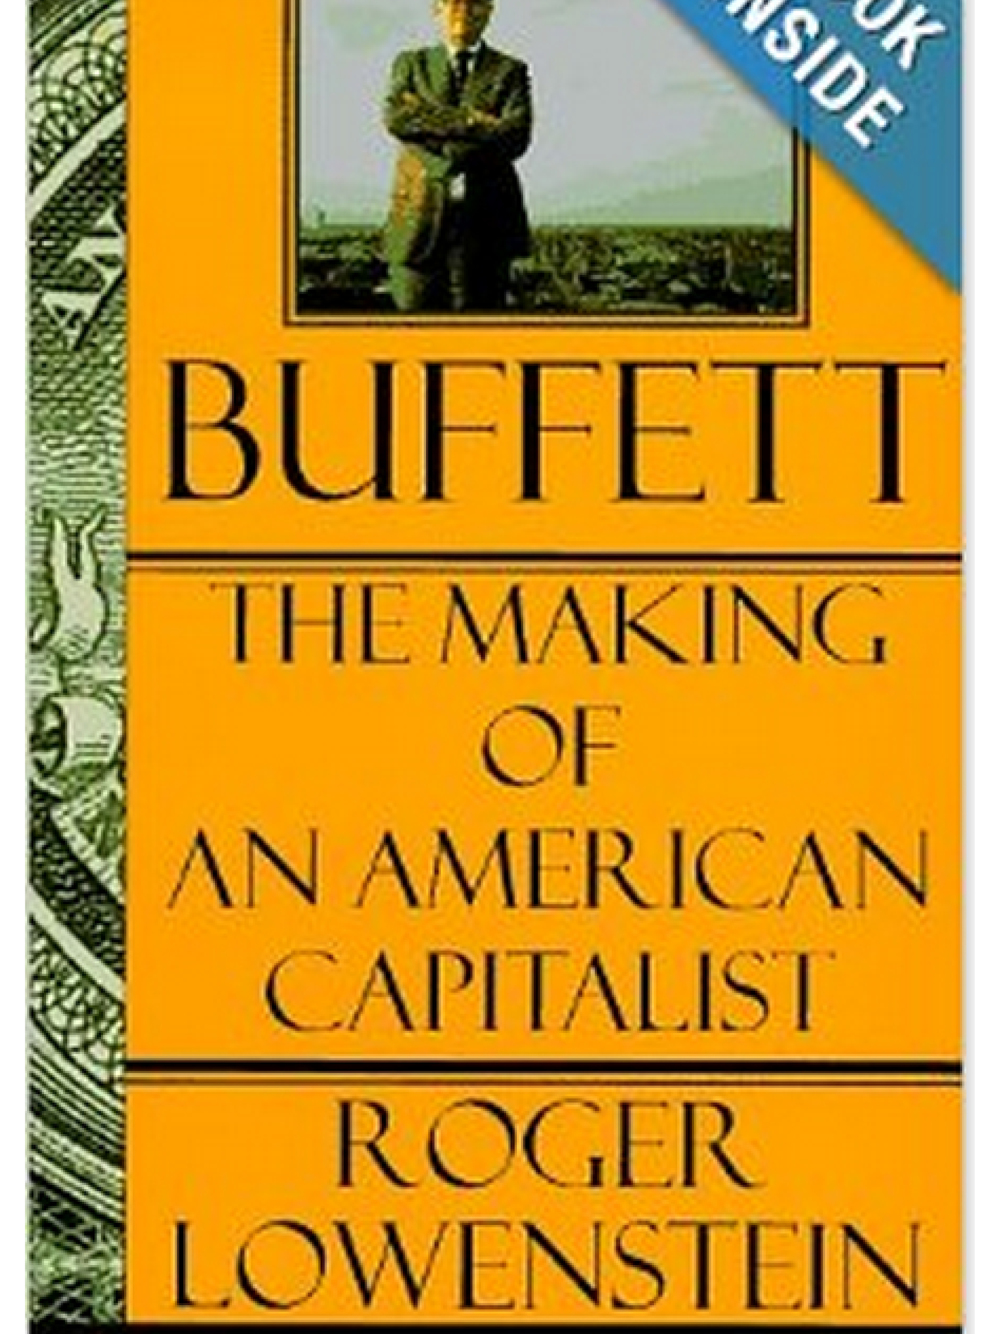 Buffett: The Making Of An American Capitalist. Roger Lowenstein 1995